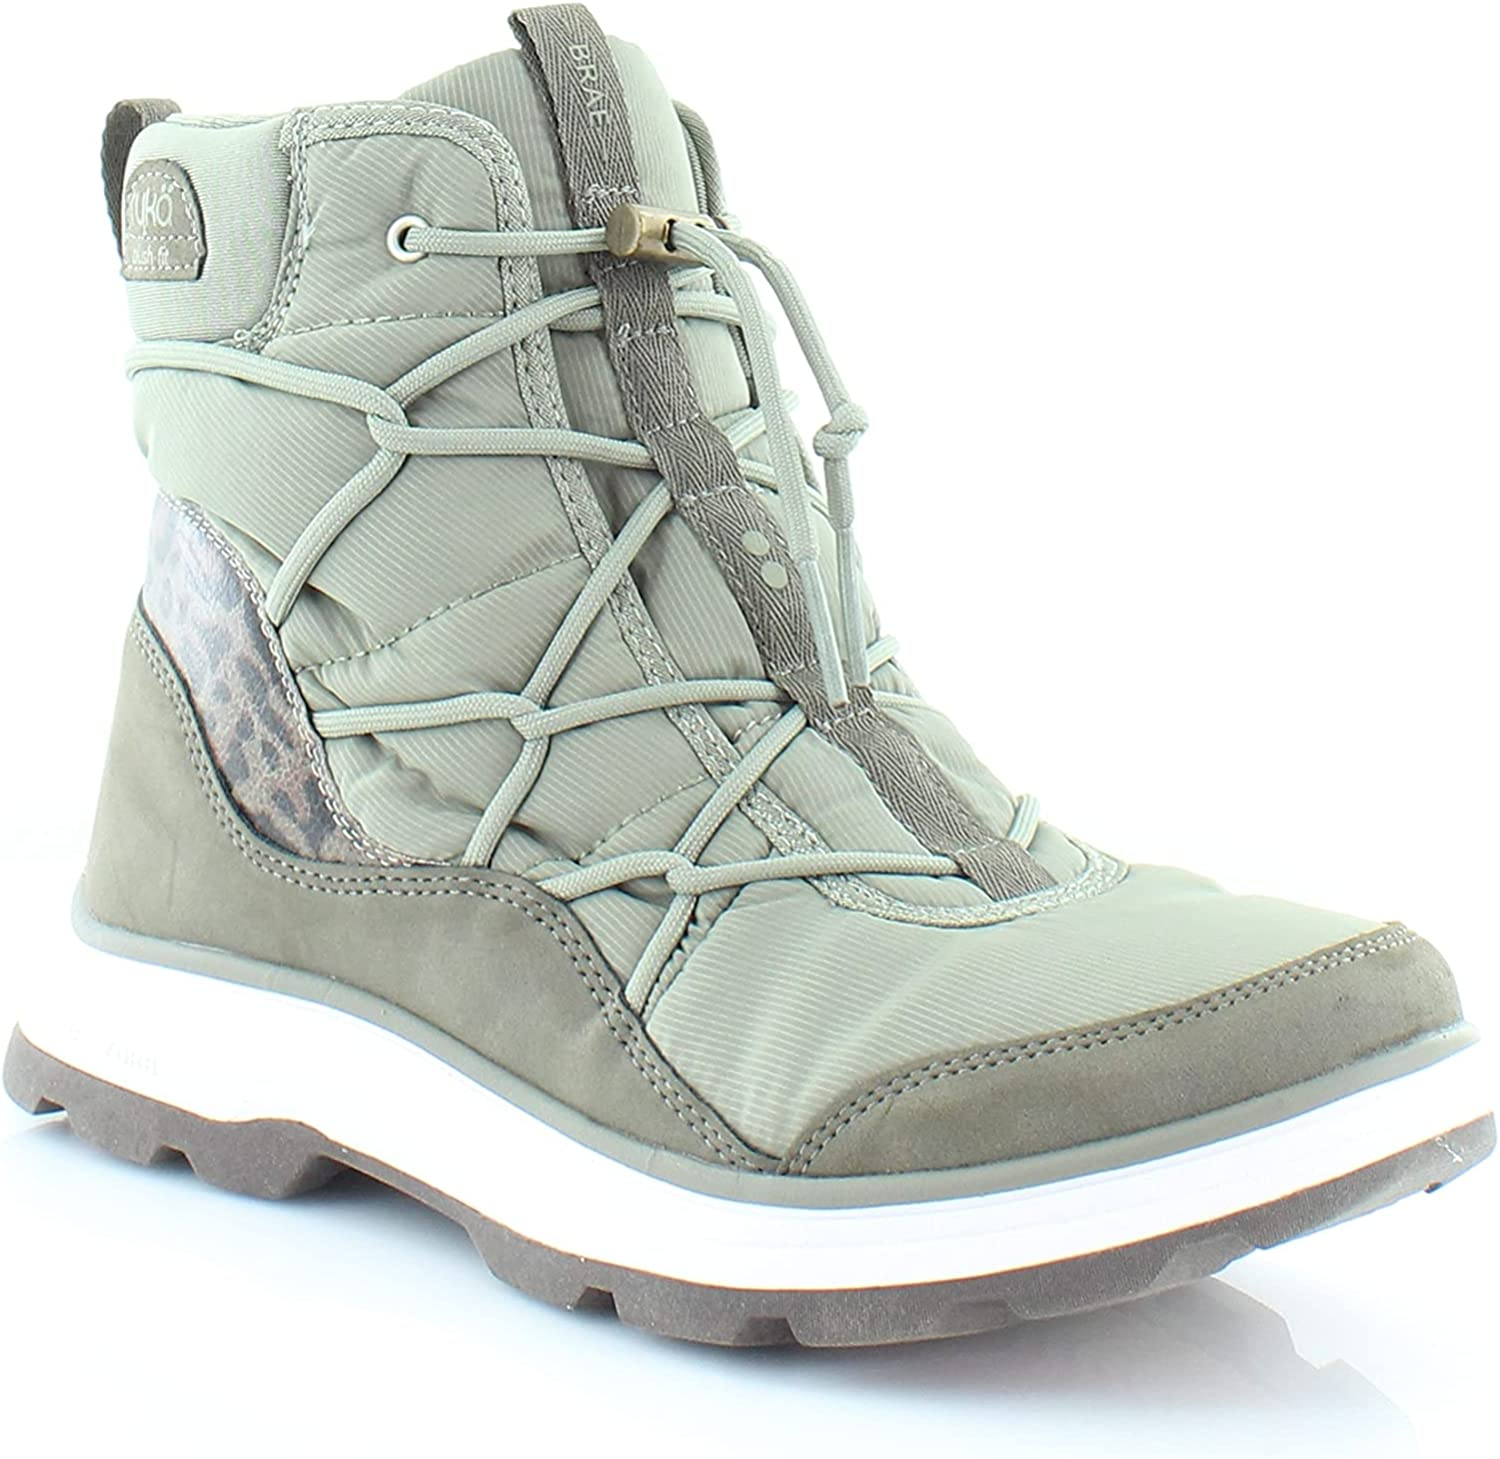 Ryka Women's Brae Large discharge sale New arrival Boot Ankle